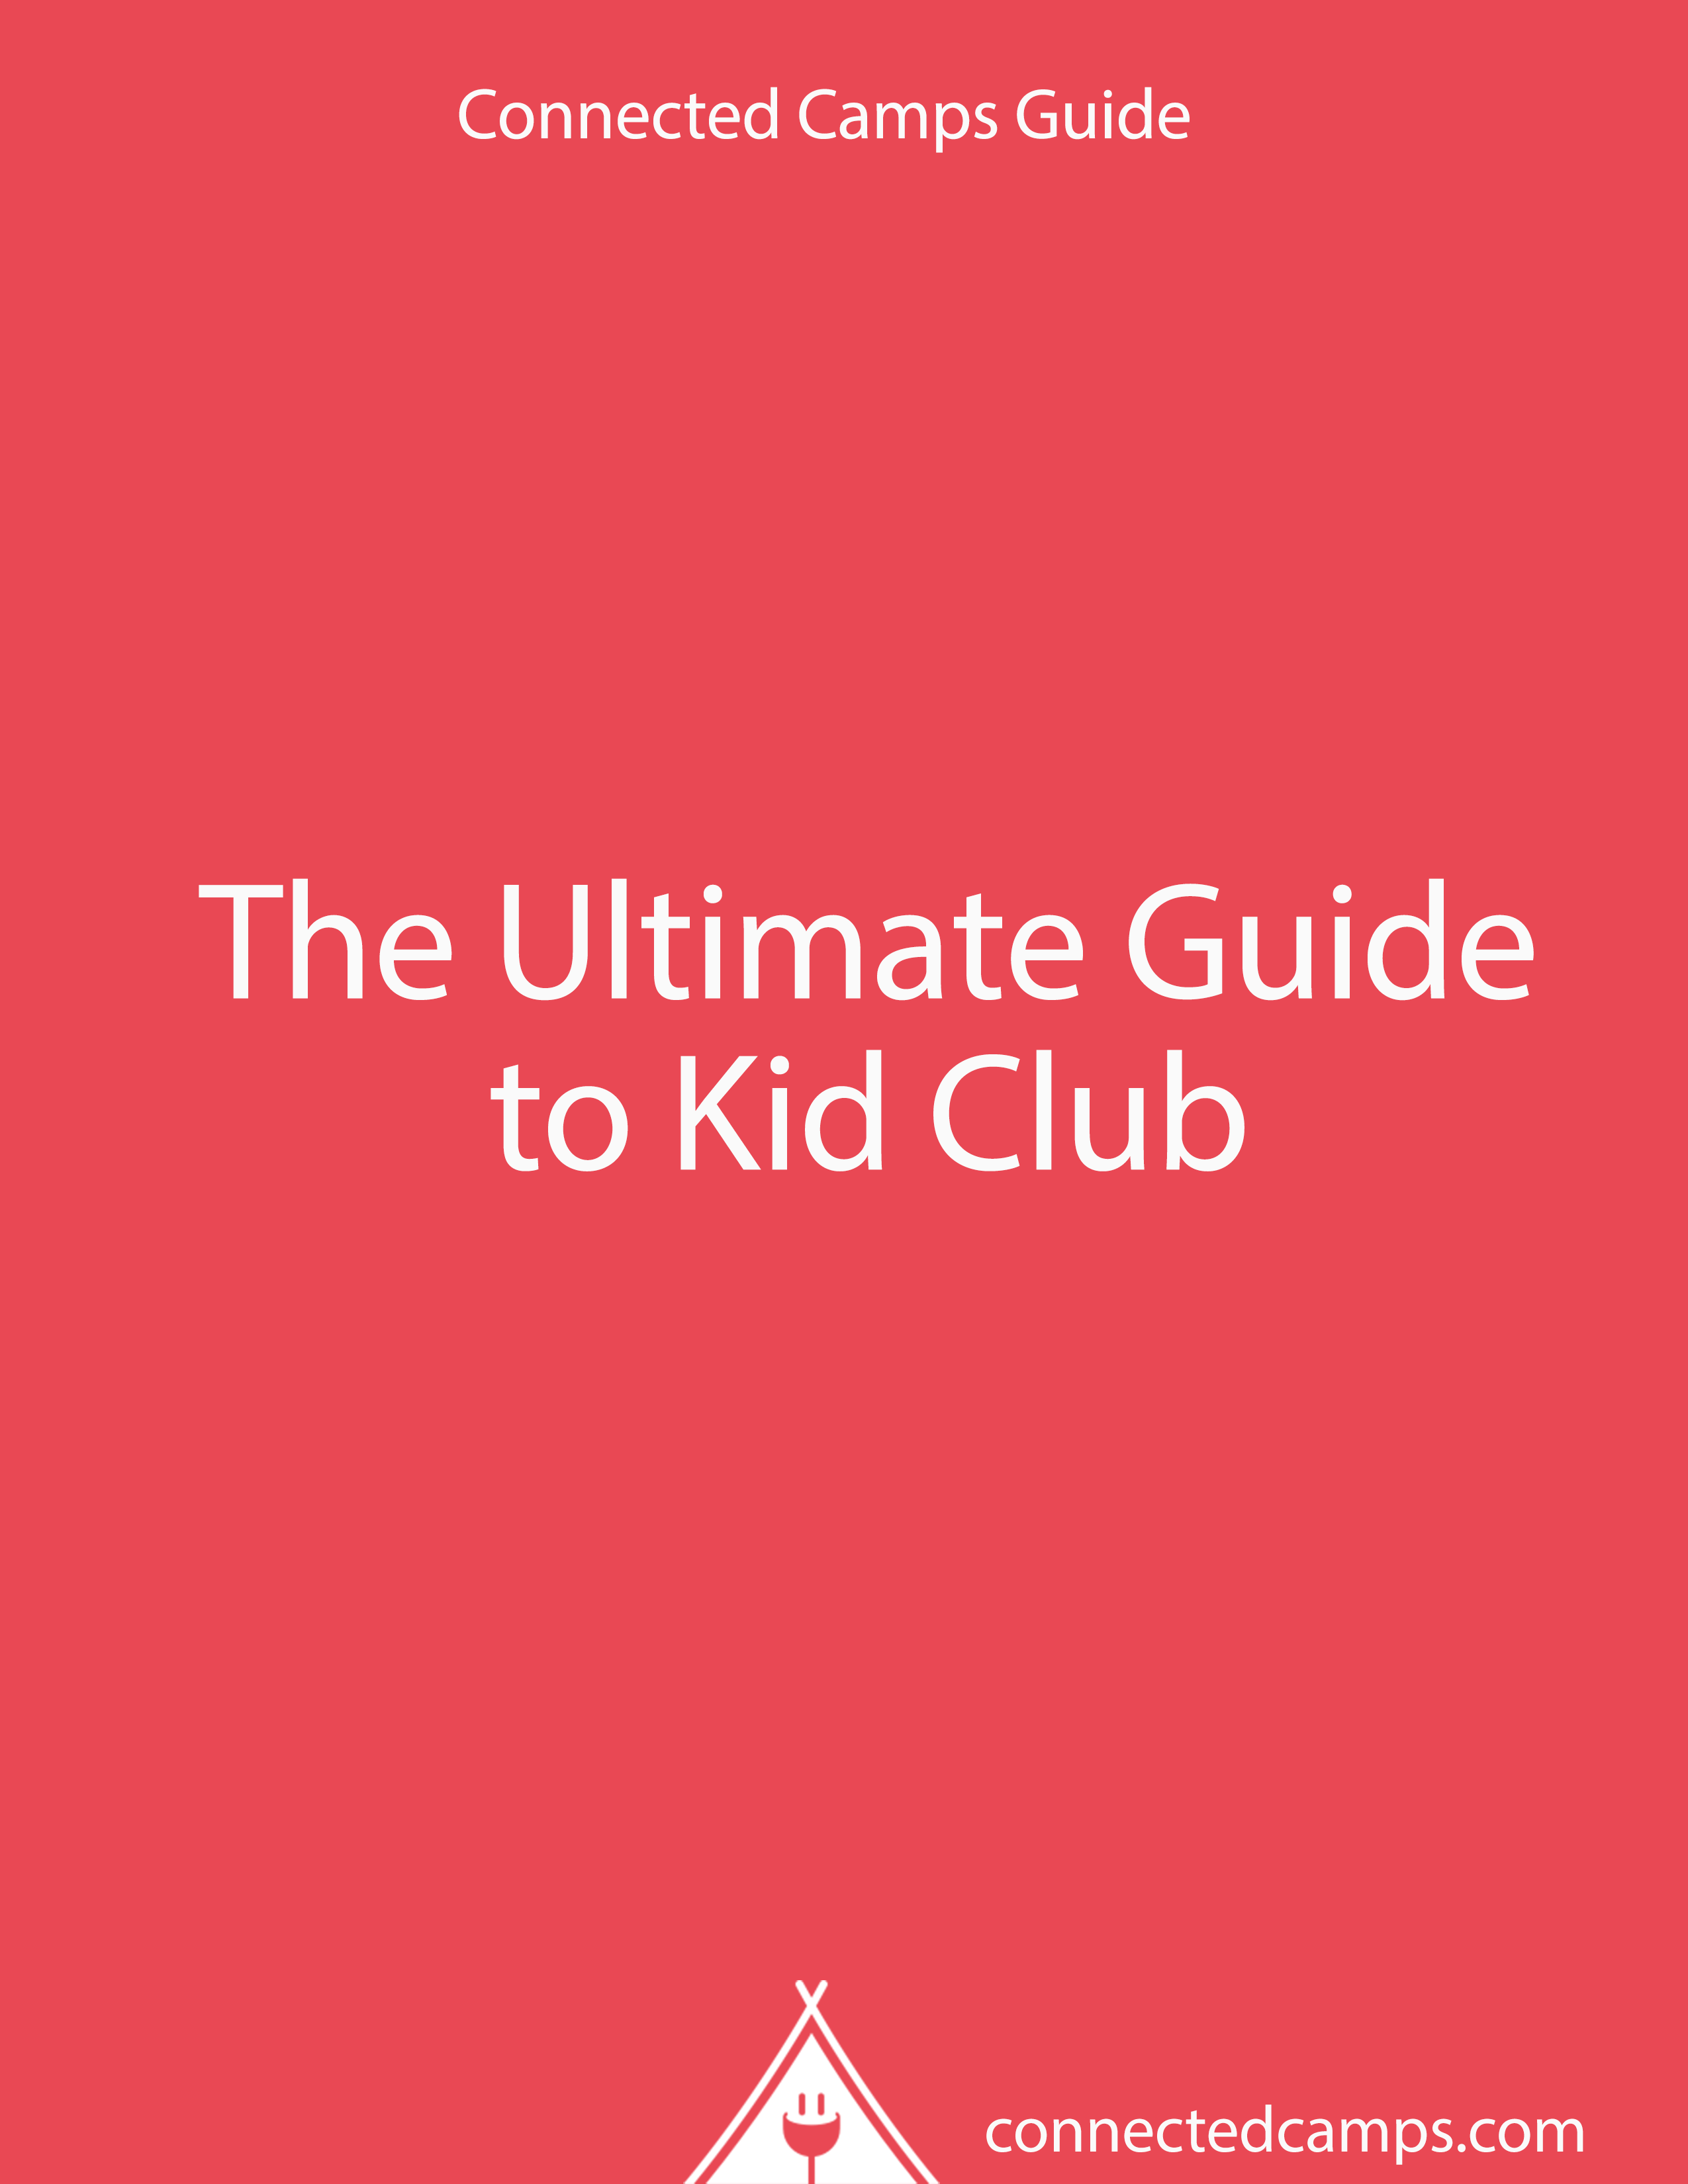 The Ultimate Guide to Kid Club